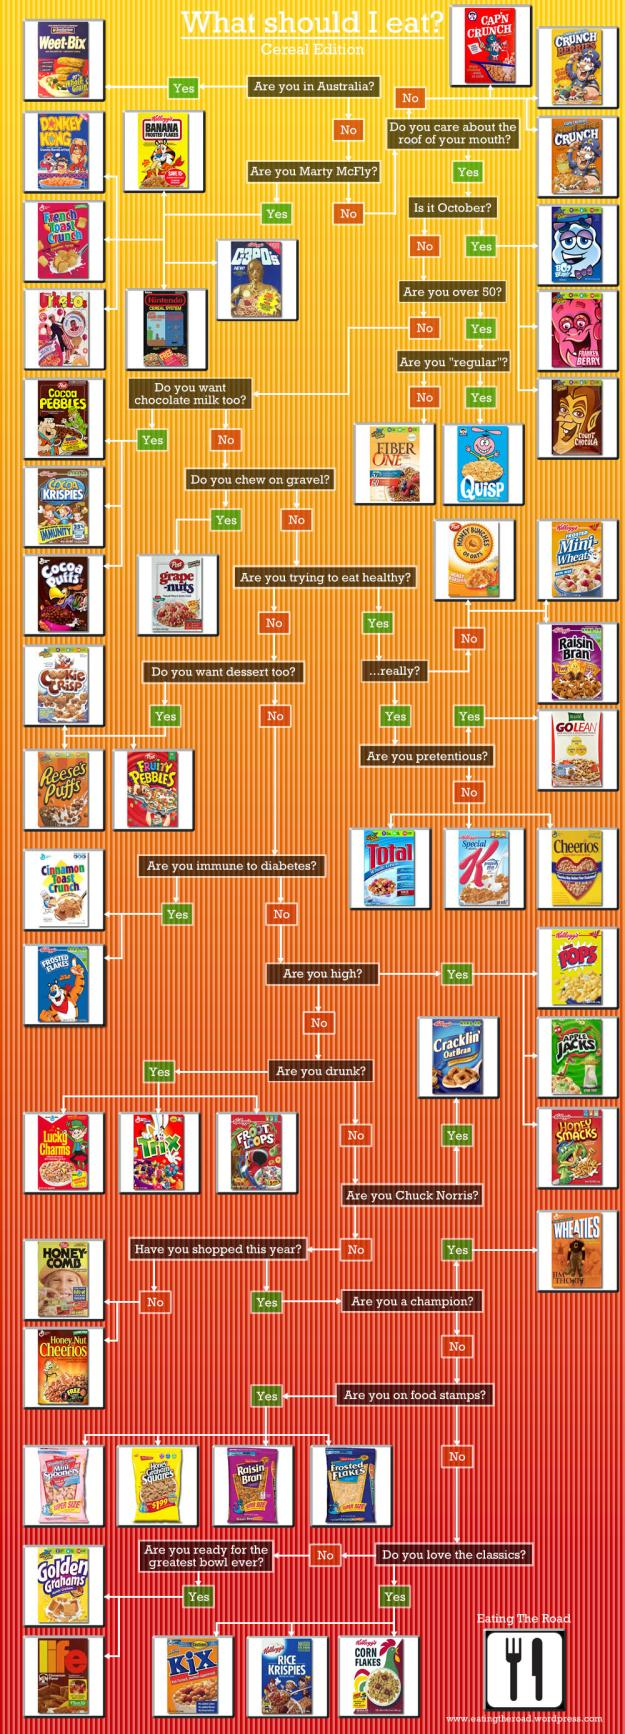 where-to-eat-cereal1